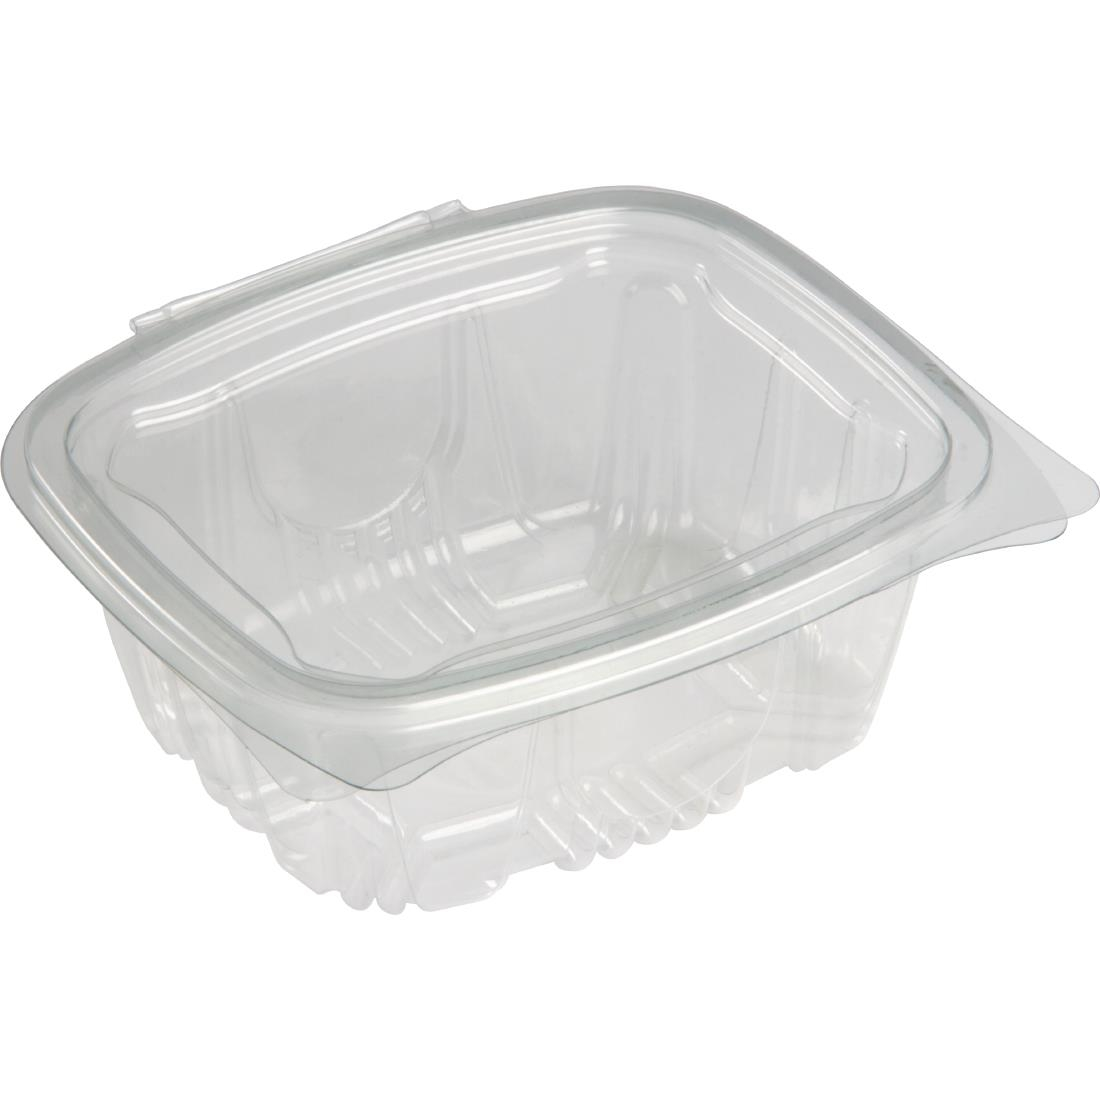 Image of RPET Salad Containers 500ml (Pack of 750) Pack of 750